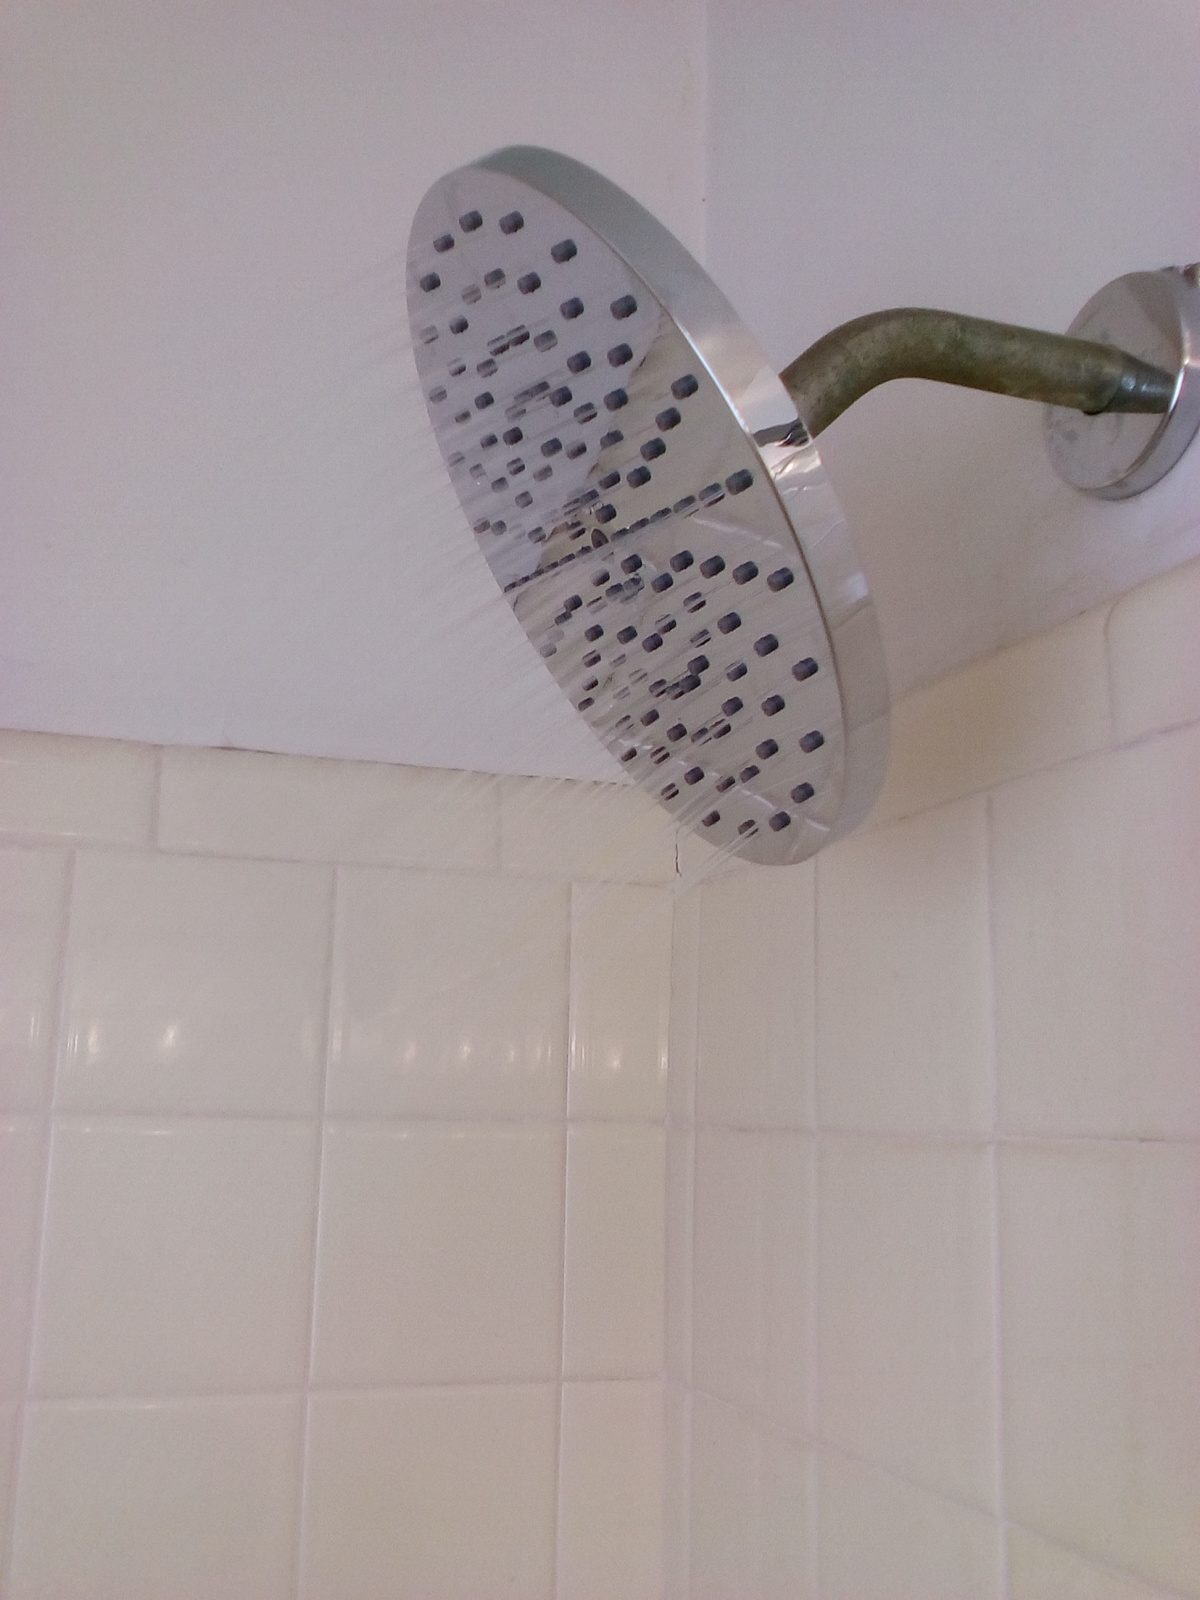 Water-saving rain shower head, works wonderfully